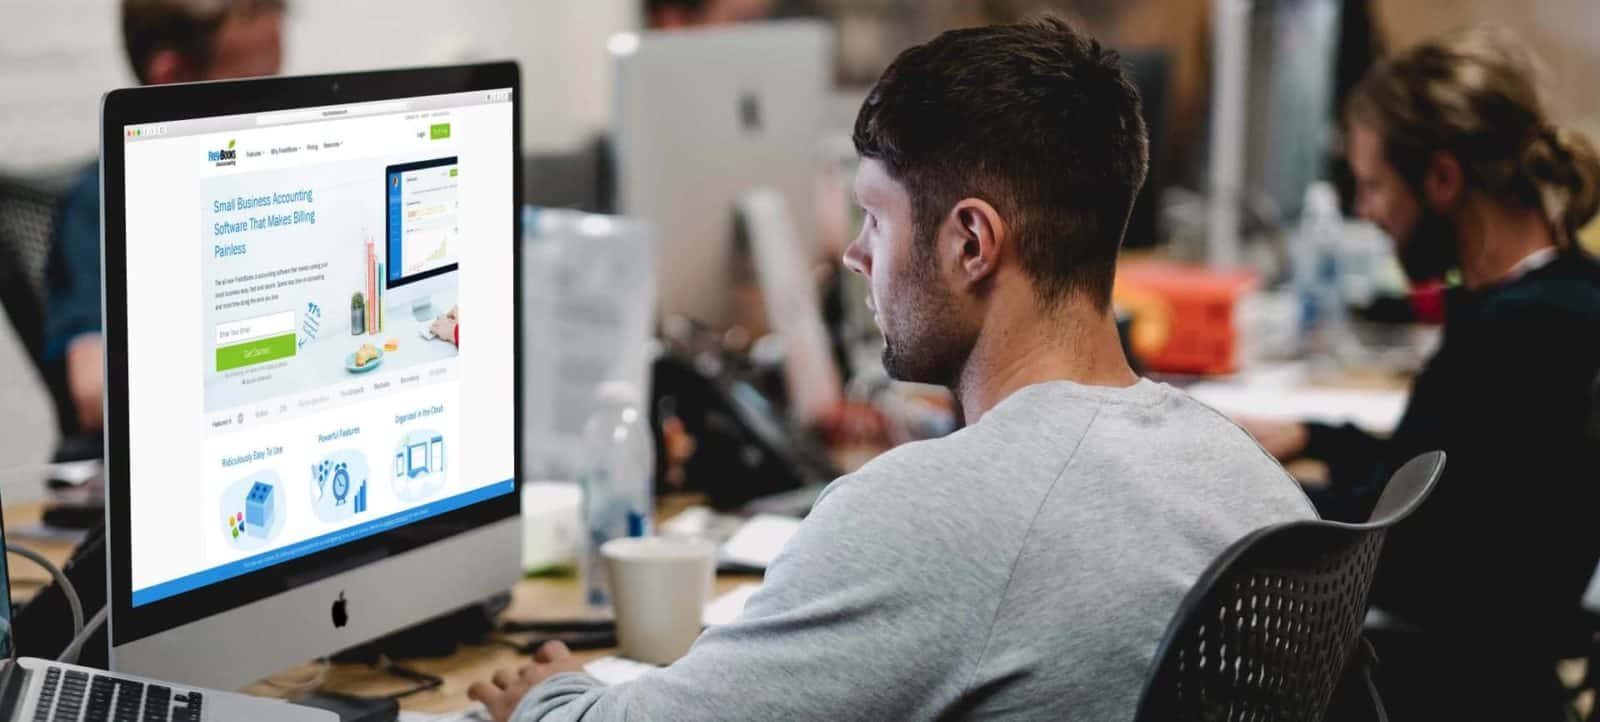 Buy Freshbooks Voucher Code April 2020